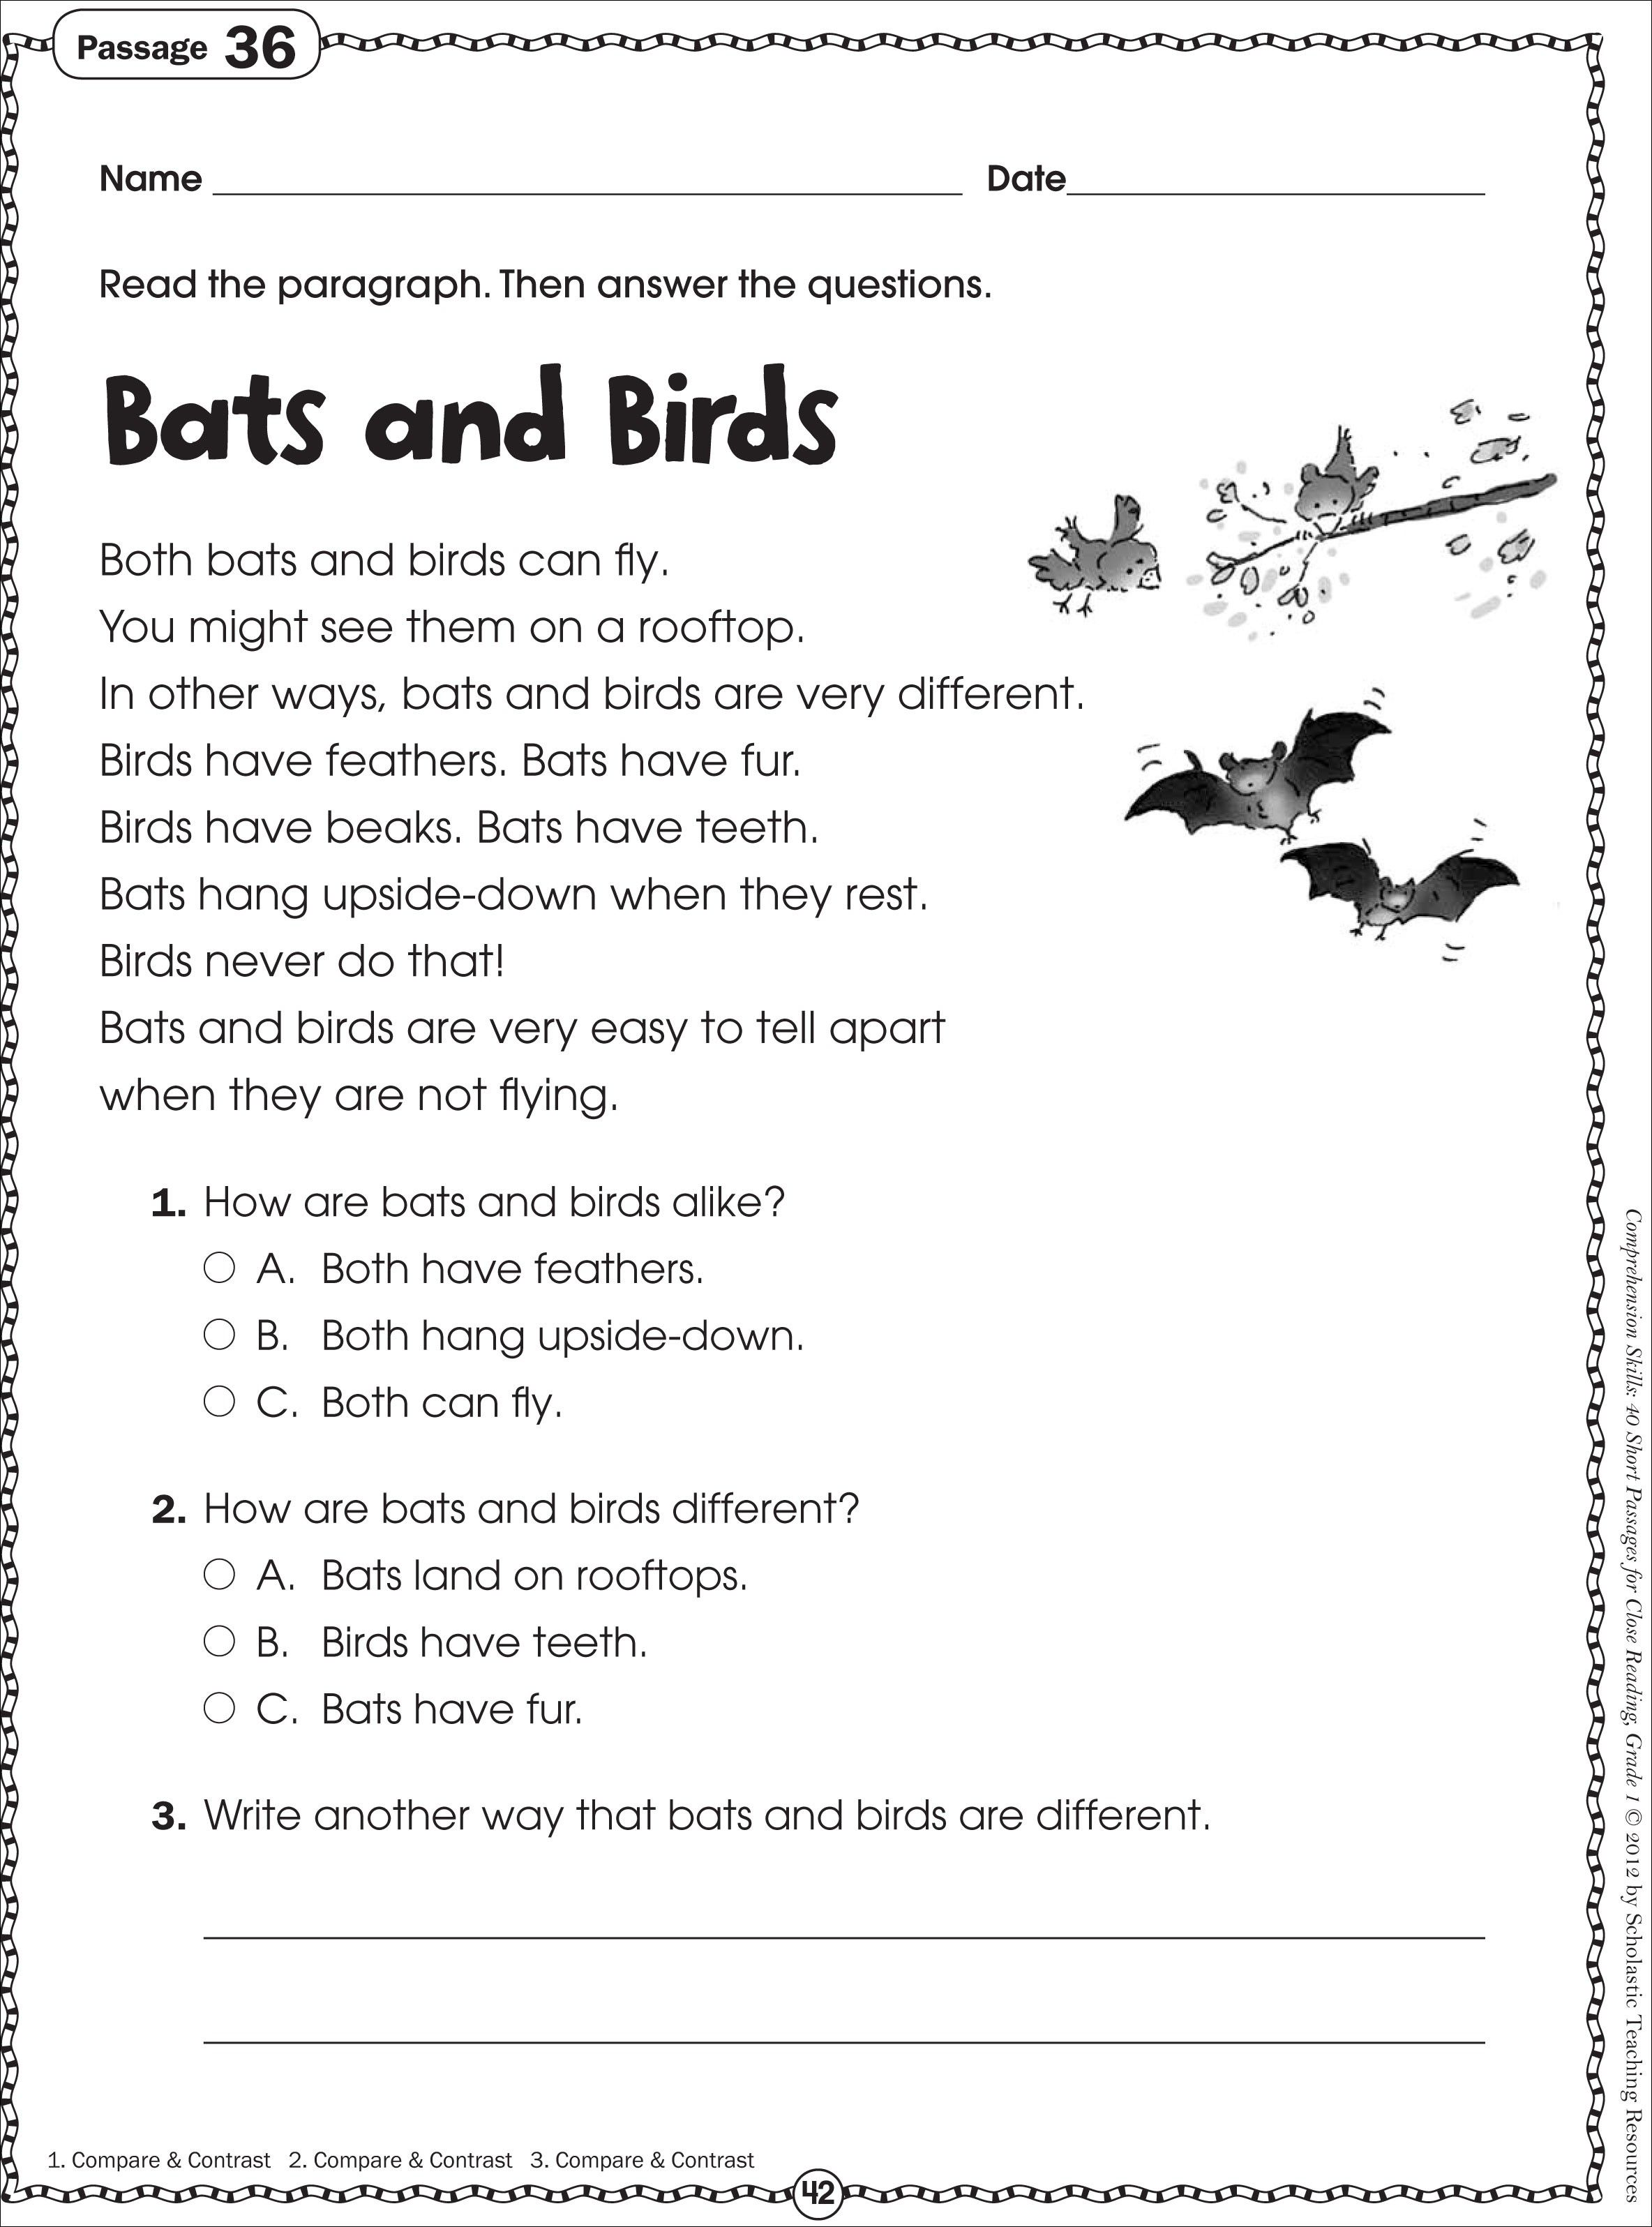 Free Printable Reading Comprehension Worksheets For Kindergarten Beautiful Kindergarten Grade 1